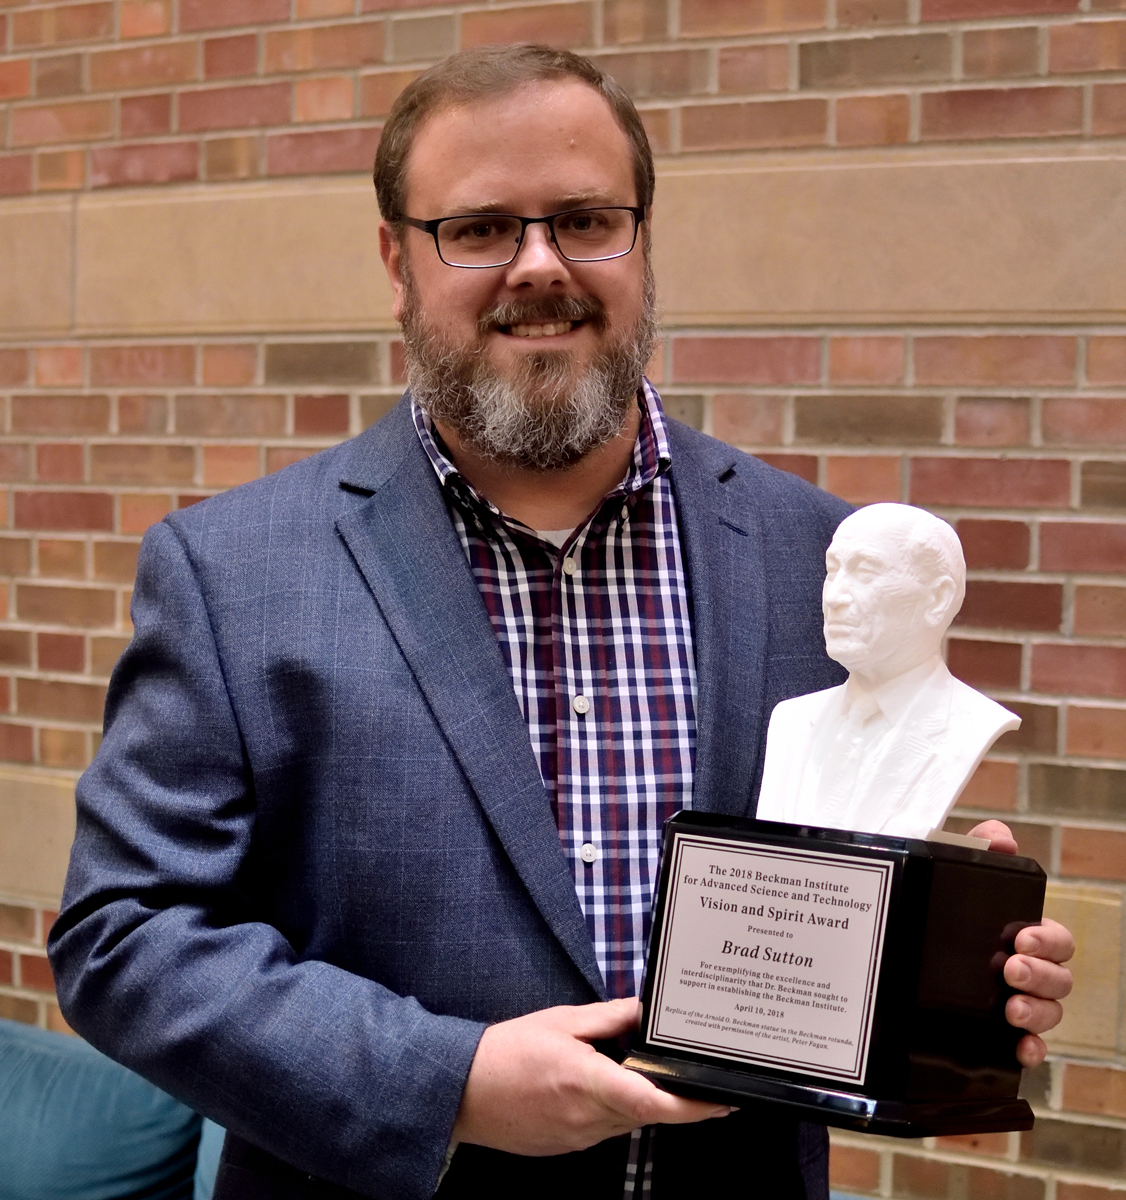 Brad Sutton holding the Beckman Vision and Spirit Award which is a 3D print of a bust of founder Arnold Beckman.